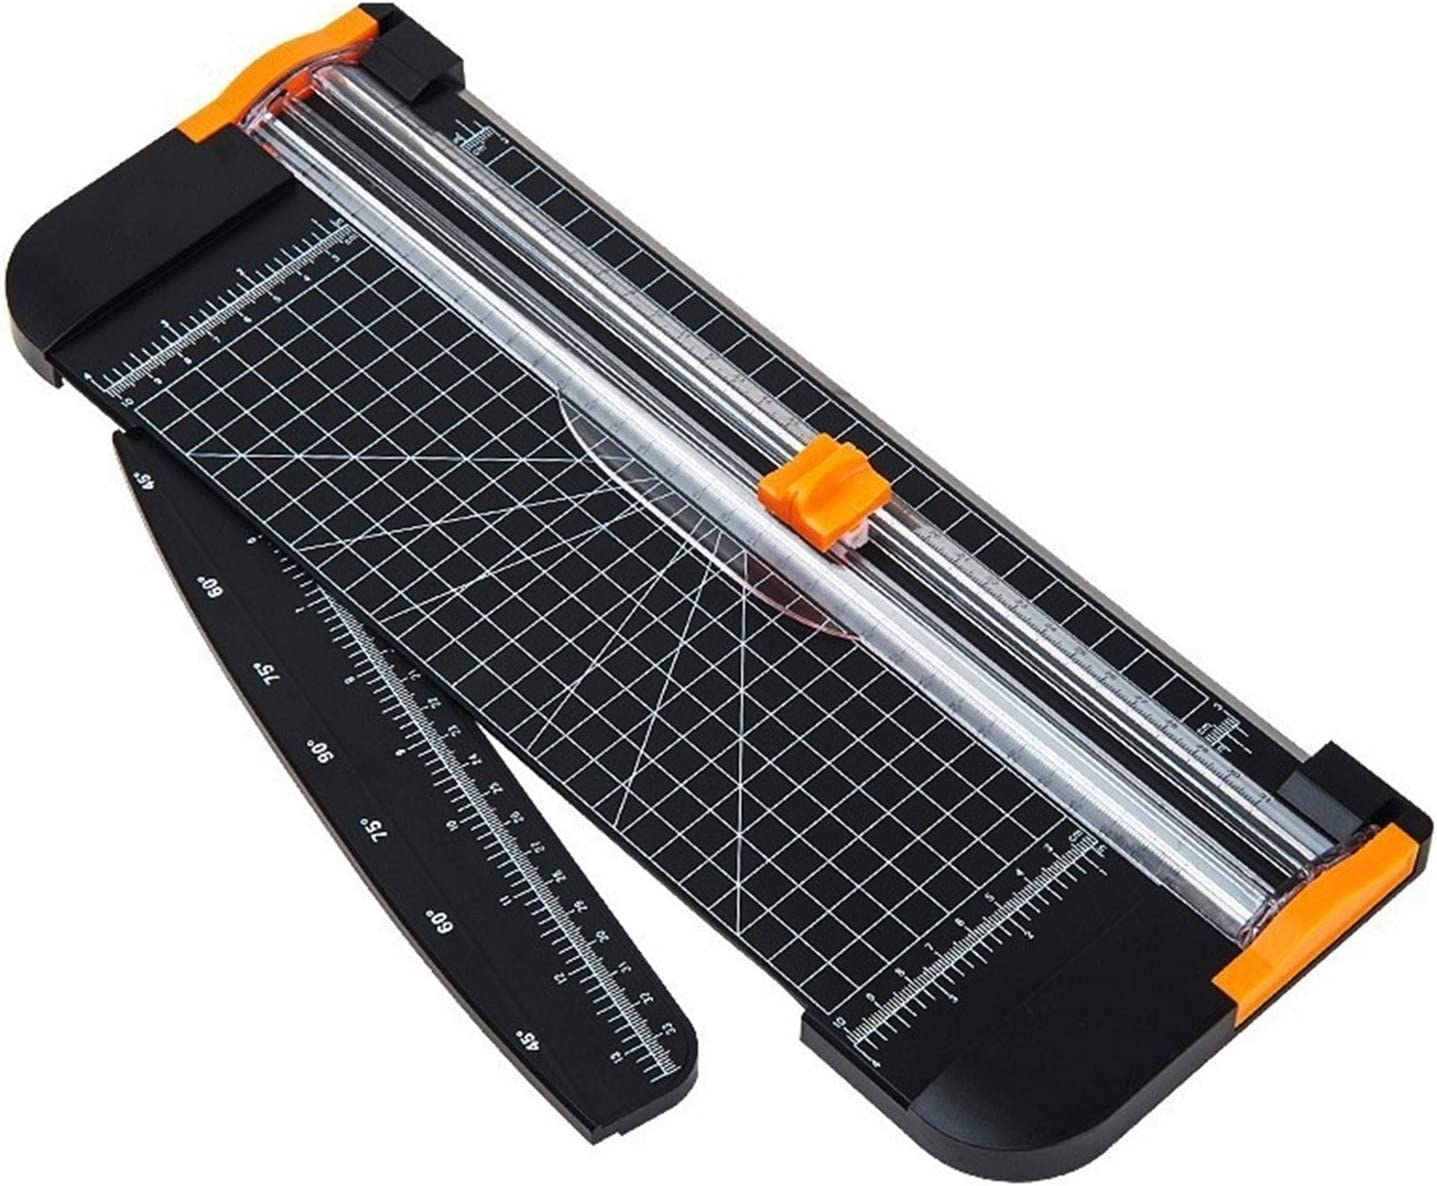 YANGLIYU Paper Slicer Selling and Max 72% OFF selling A4 Precision Trimmers S Photo Cutter